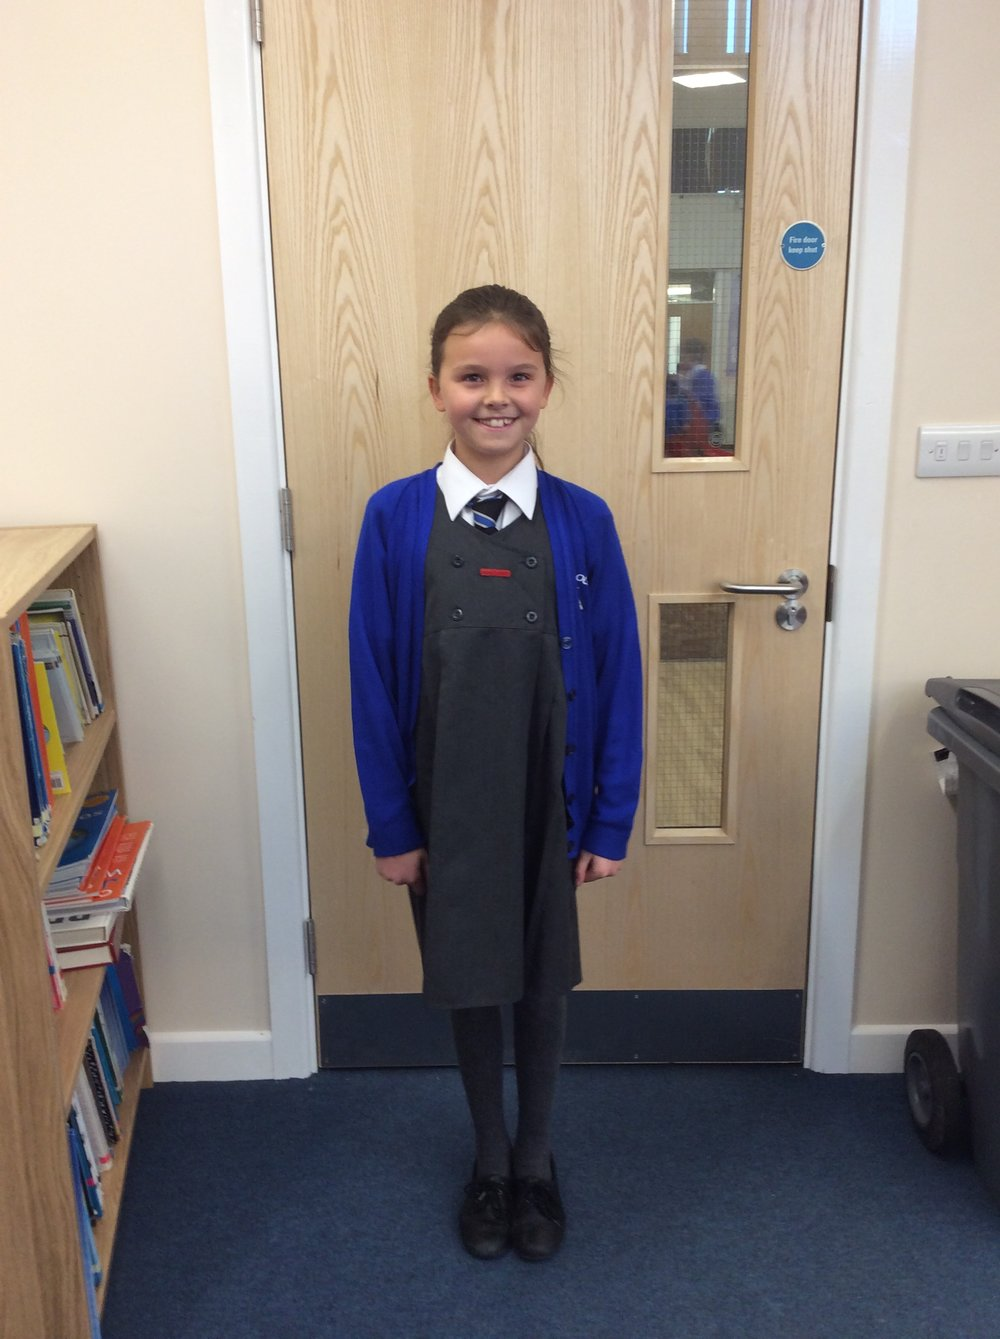 Hello, my name is Rachael from Year 6 and I am the elected Vice Chair of Ladymount School Council. I shall shadow Joshua and support him in leading the meetings.